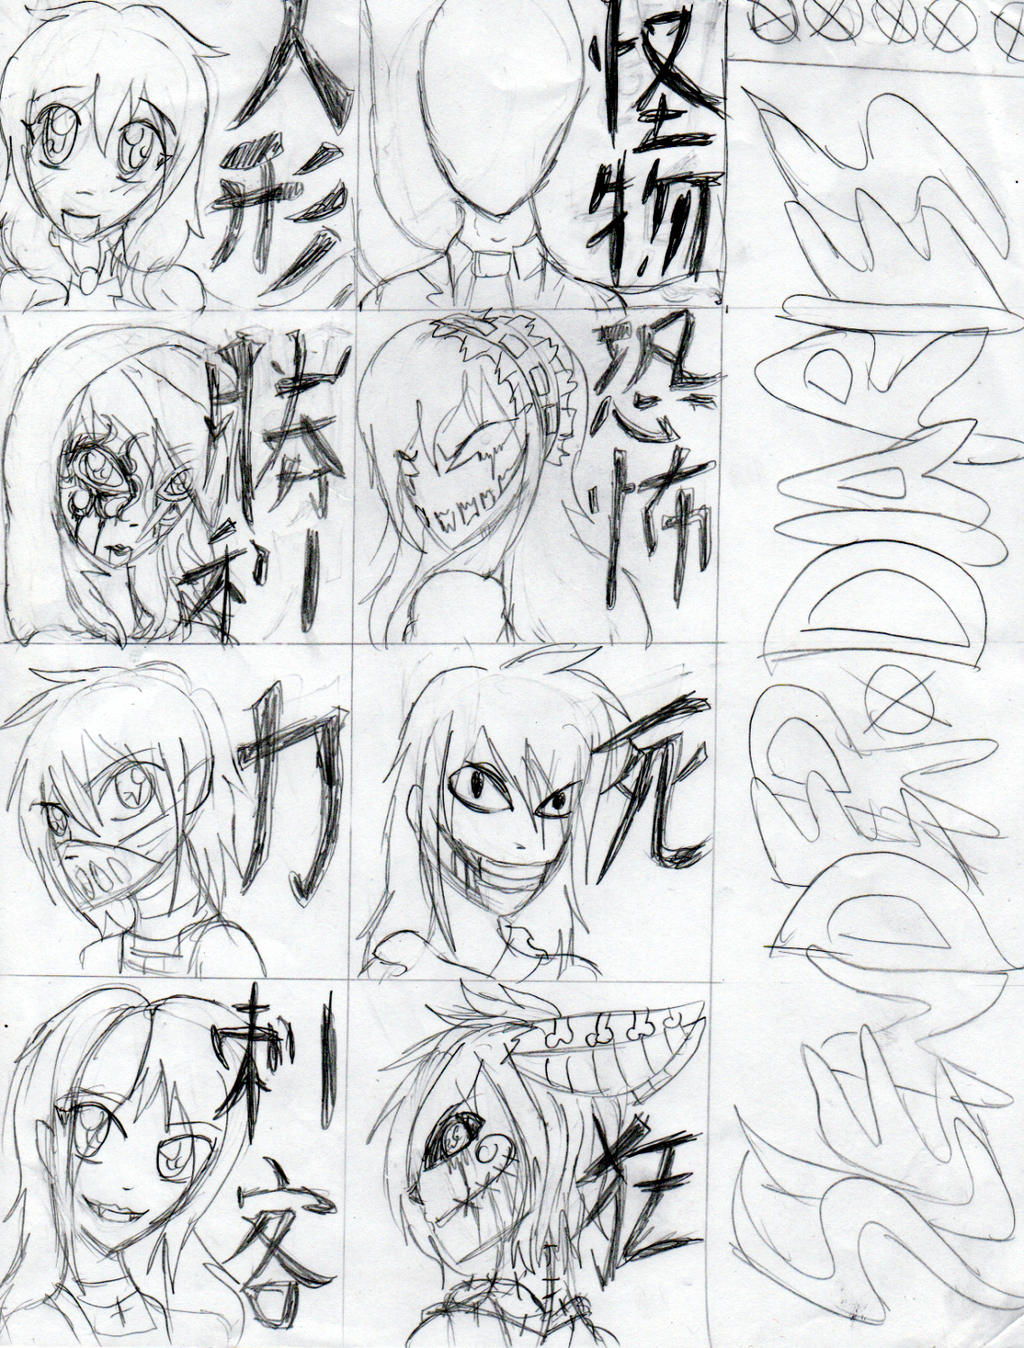 TRADITIONAL: Slender Diaries Crew- Kanji Pt 1 by InvaderIka